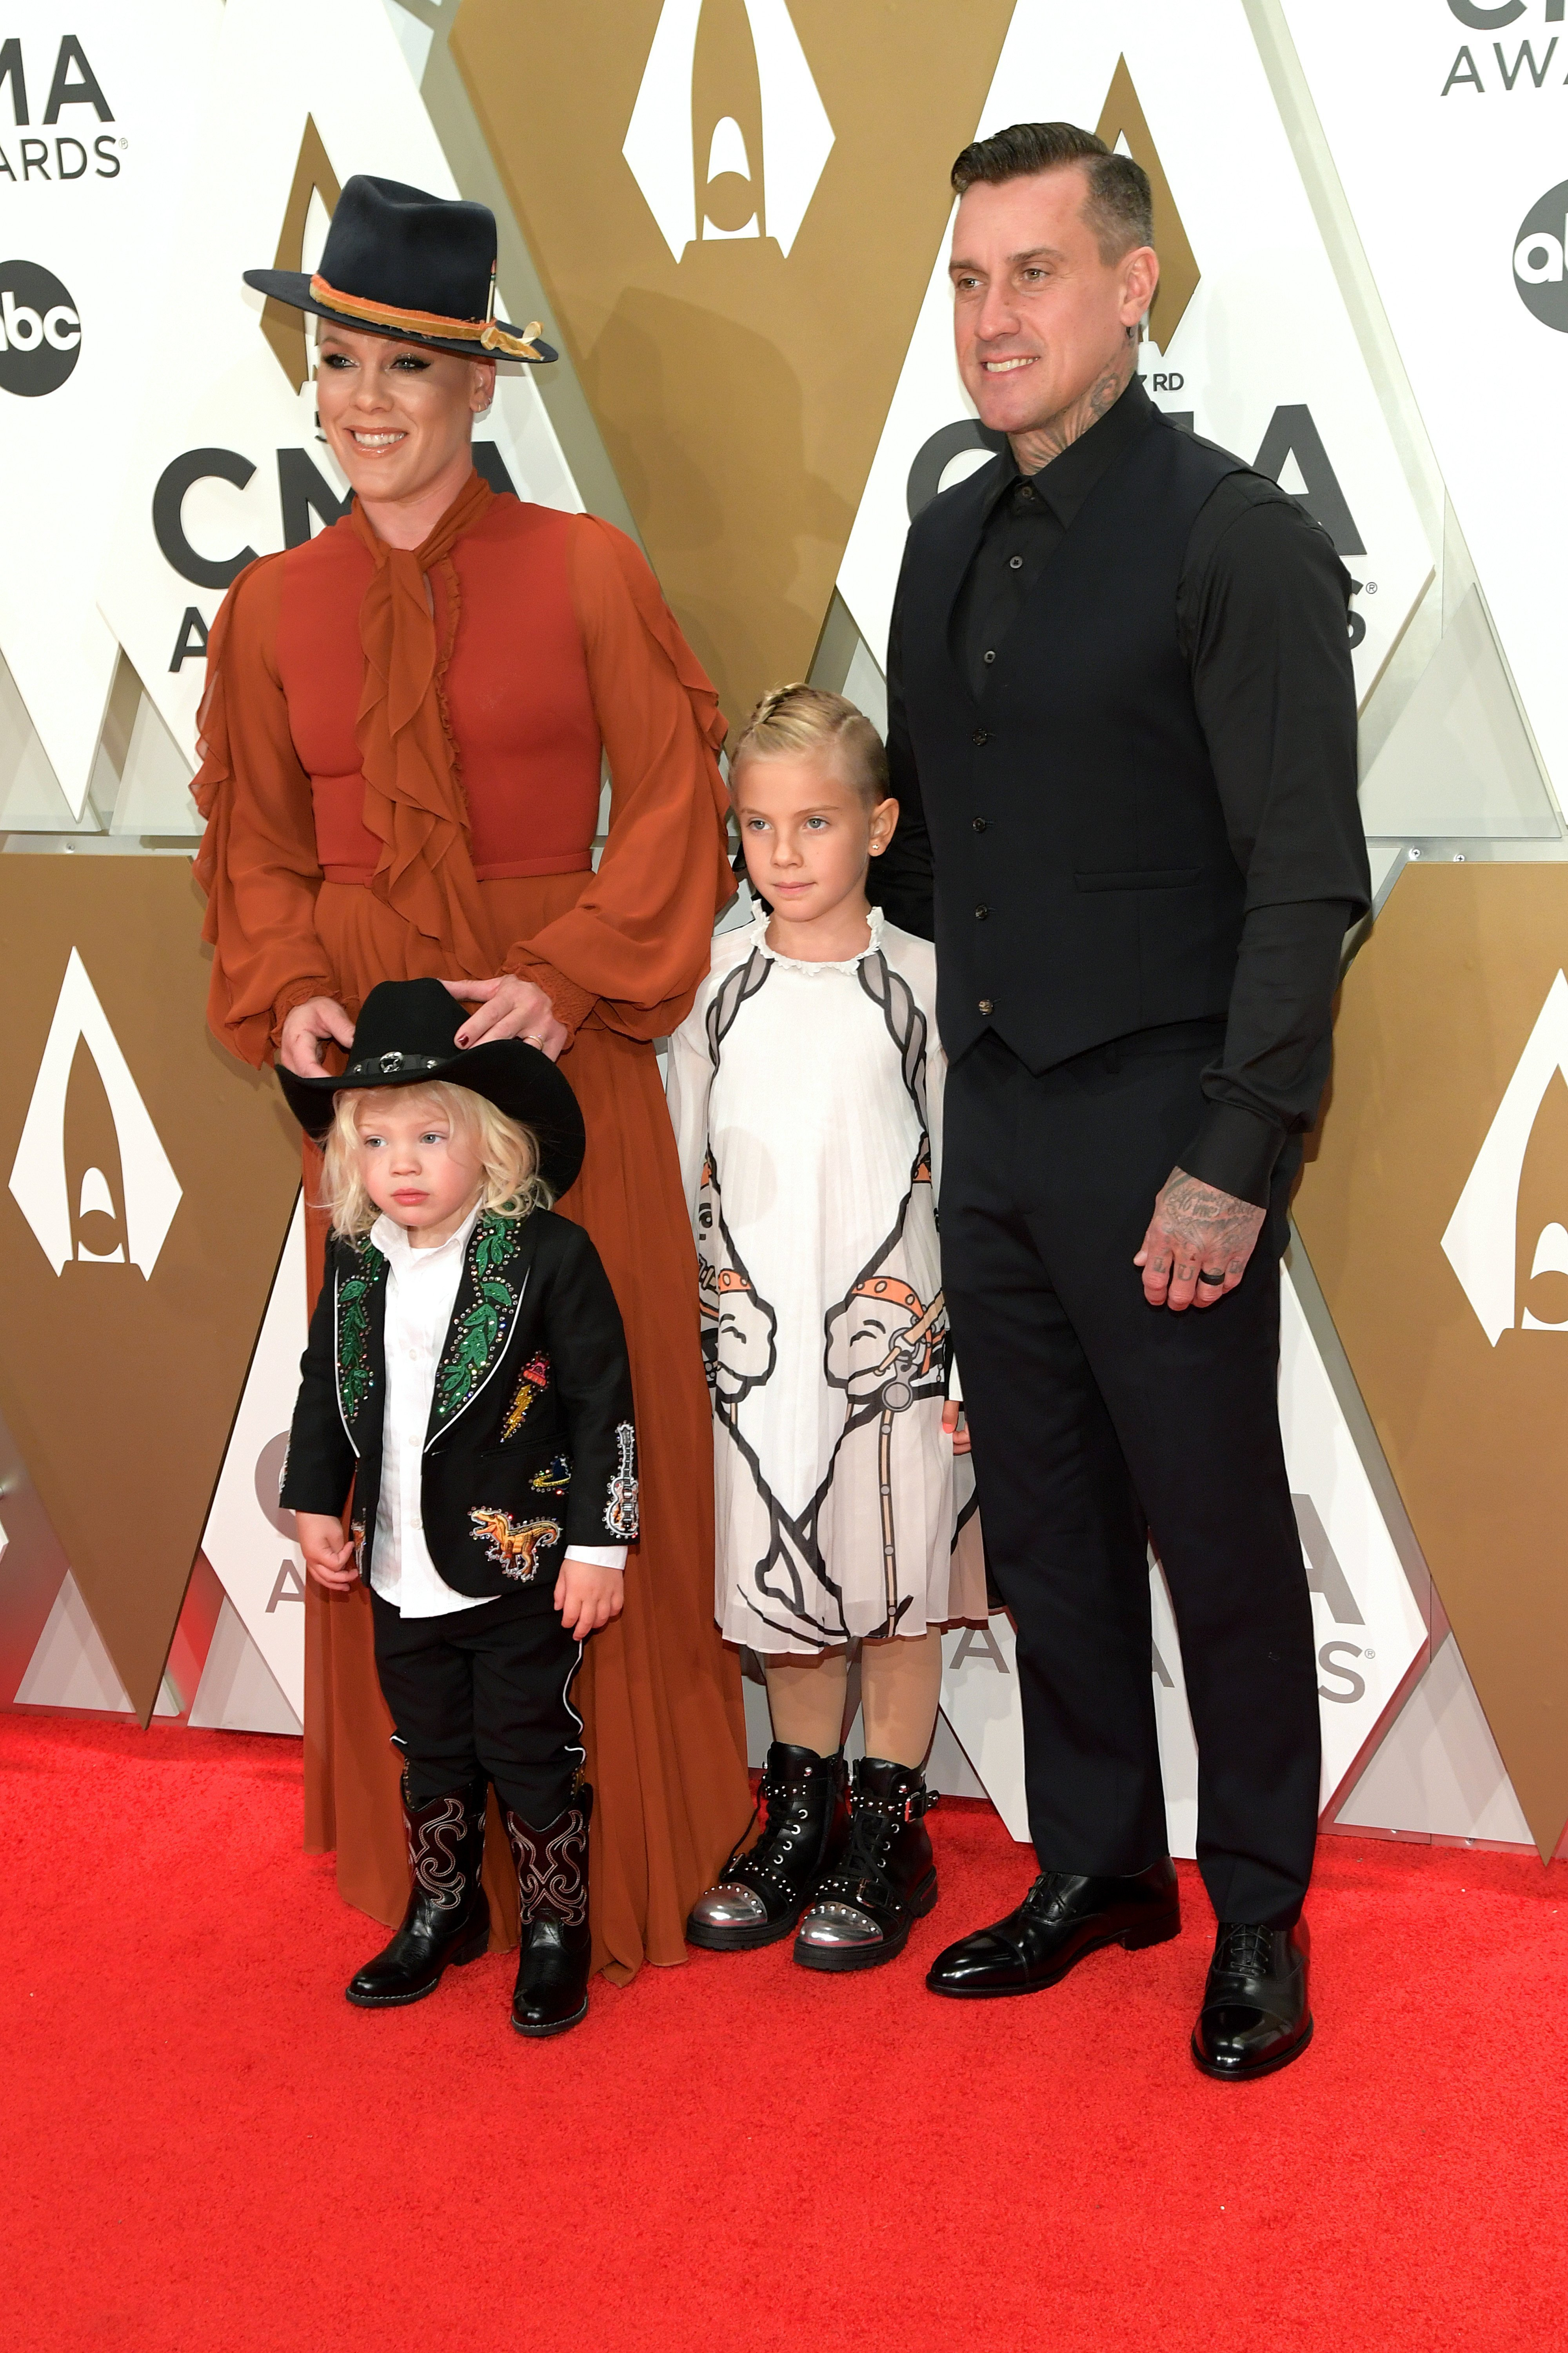 Jameson Hart, Willow Hart, P!nk and Carey Hart attend the 53rd annual CMA Awards at the Music City Center on November 13, 2019, in Nashville, Tennessee. | Source: Getty Images.